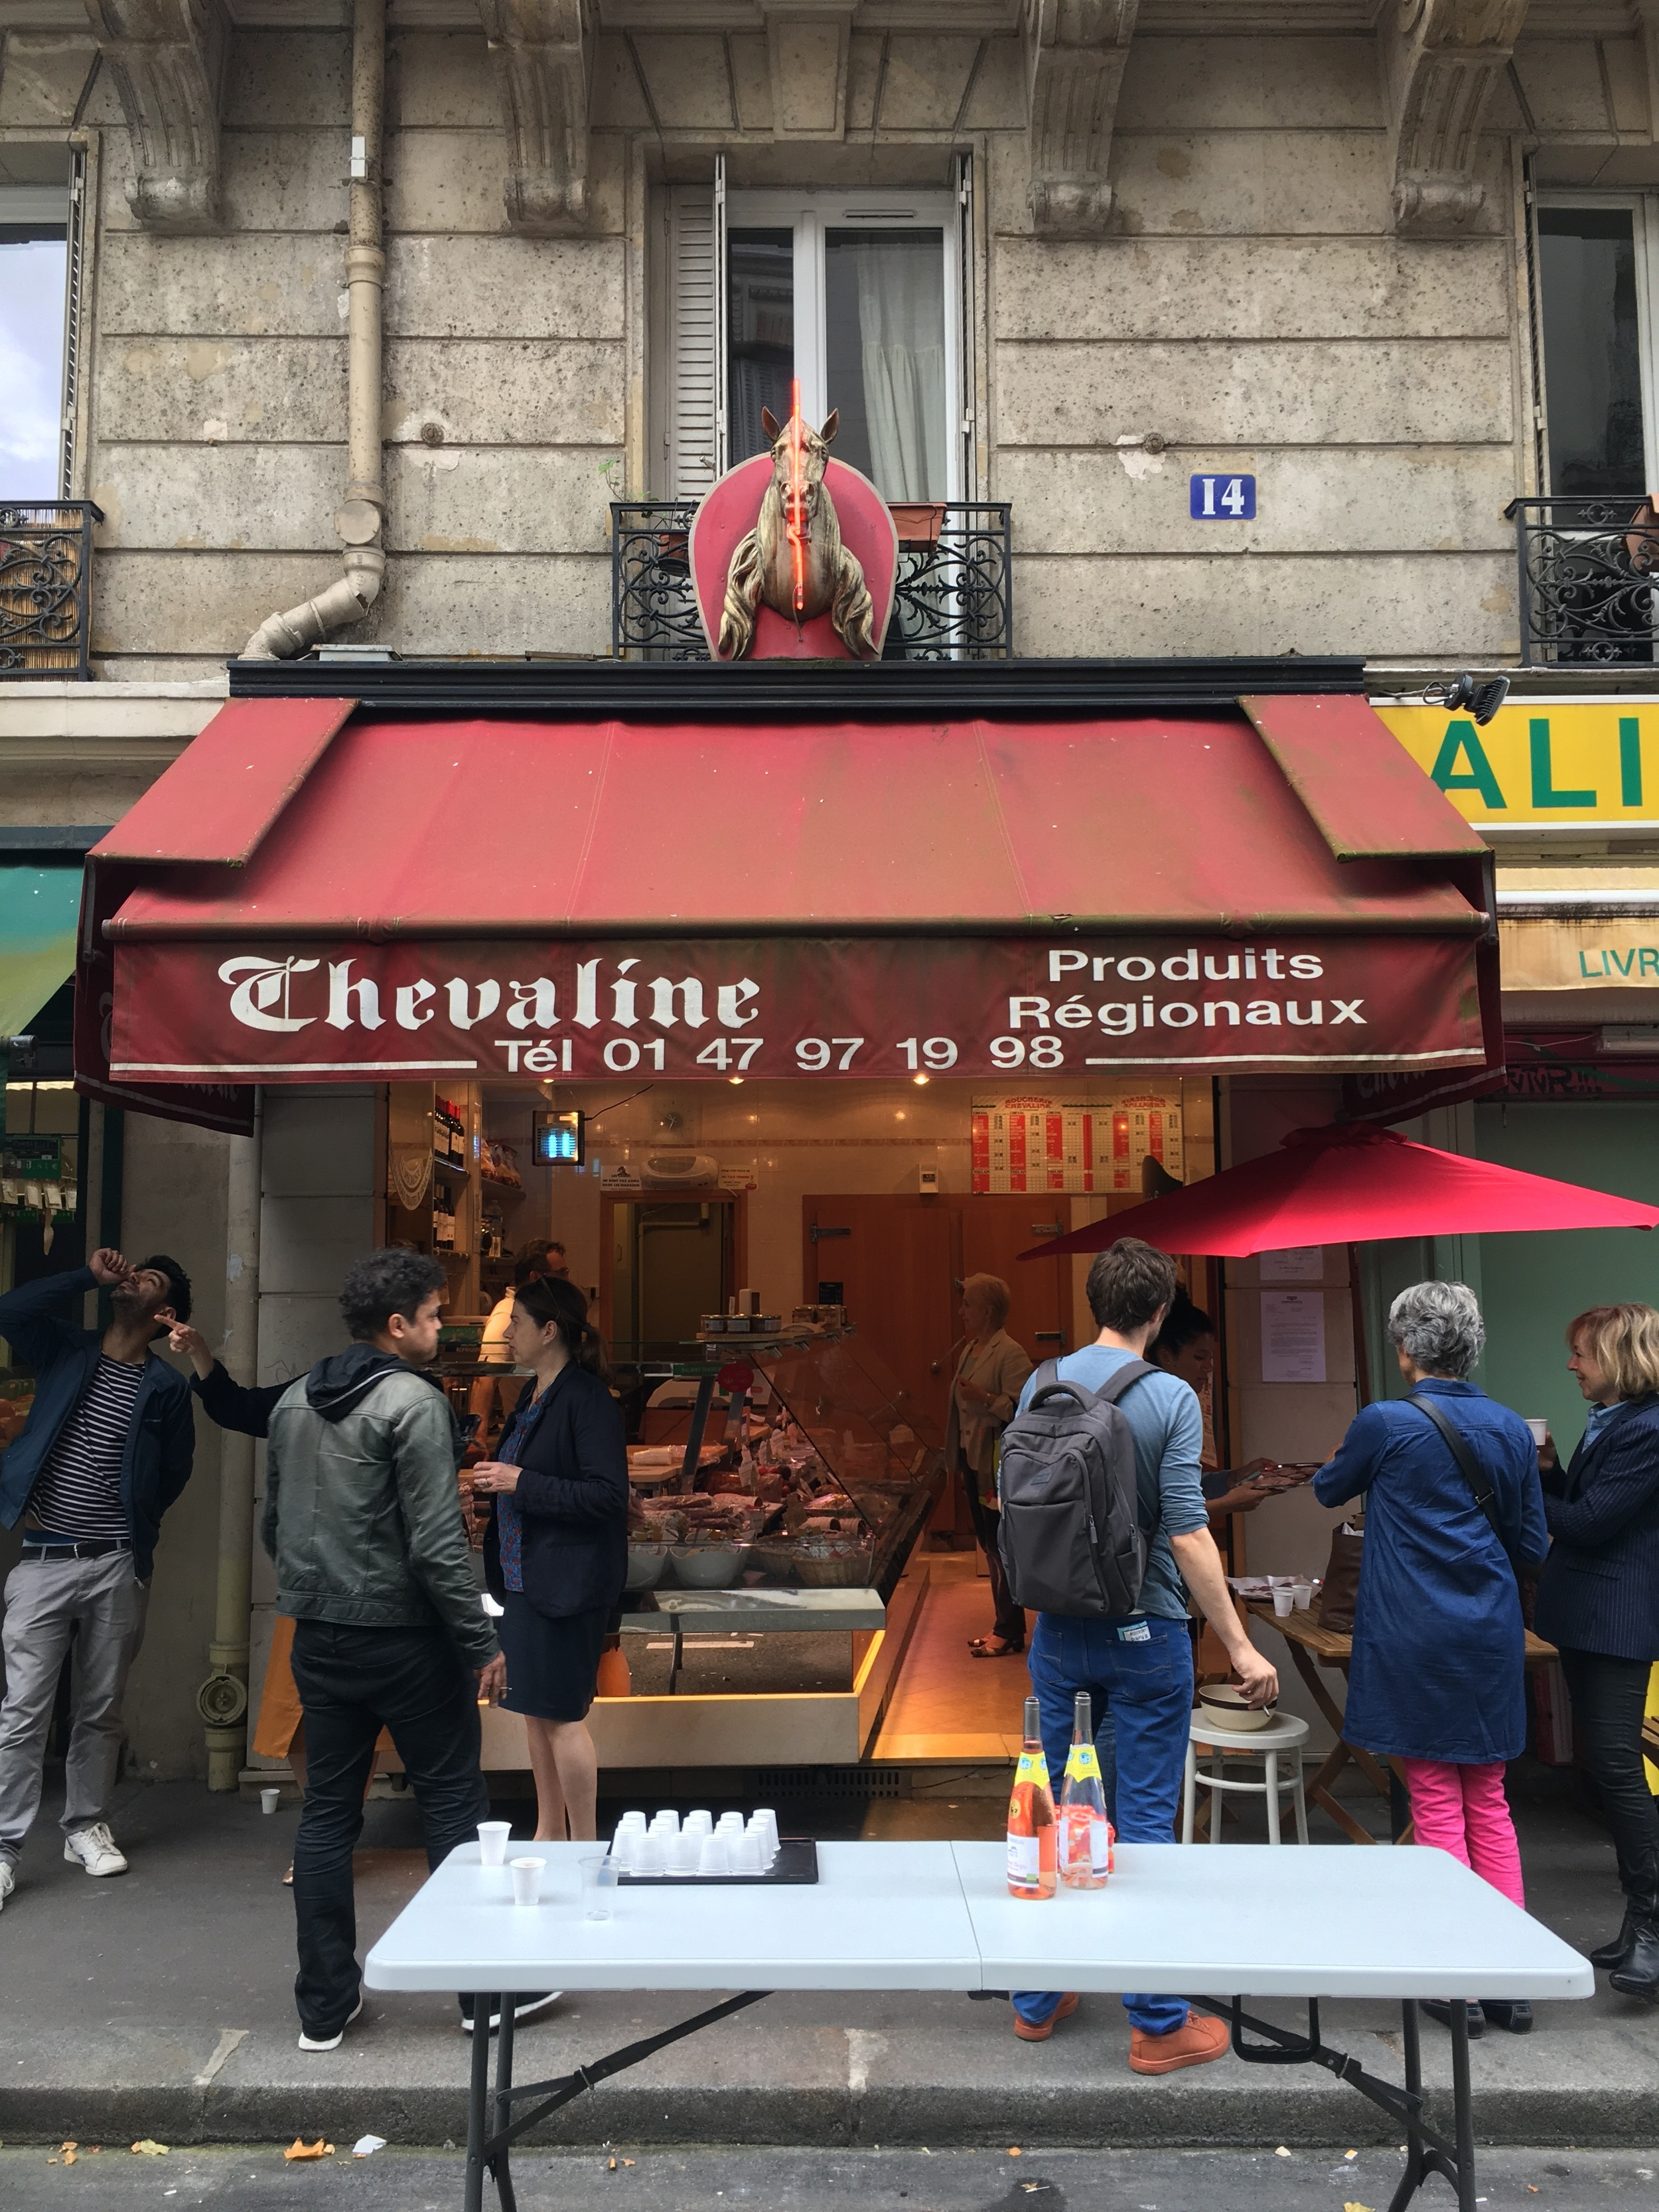 Book launch at Didier Dassonville's butcher shop. It will close in September 2016, bringing the number of horse butchers in Paris down to 9.